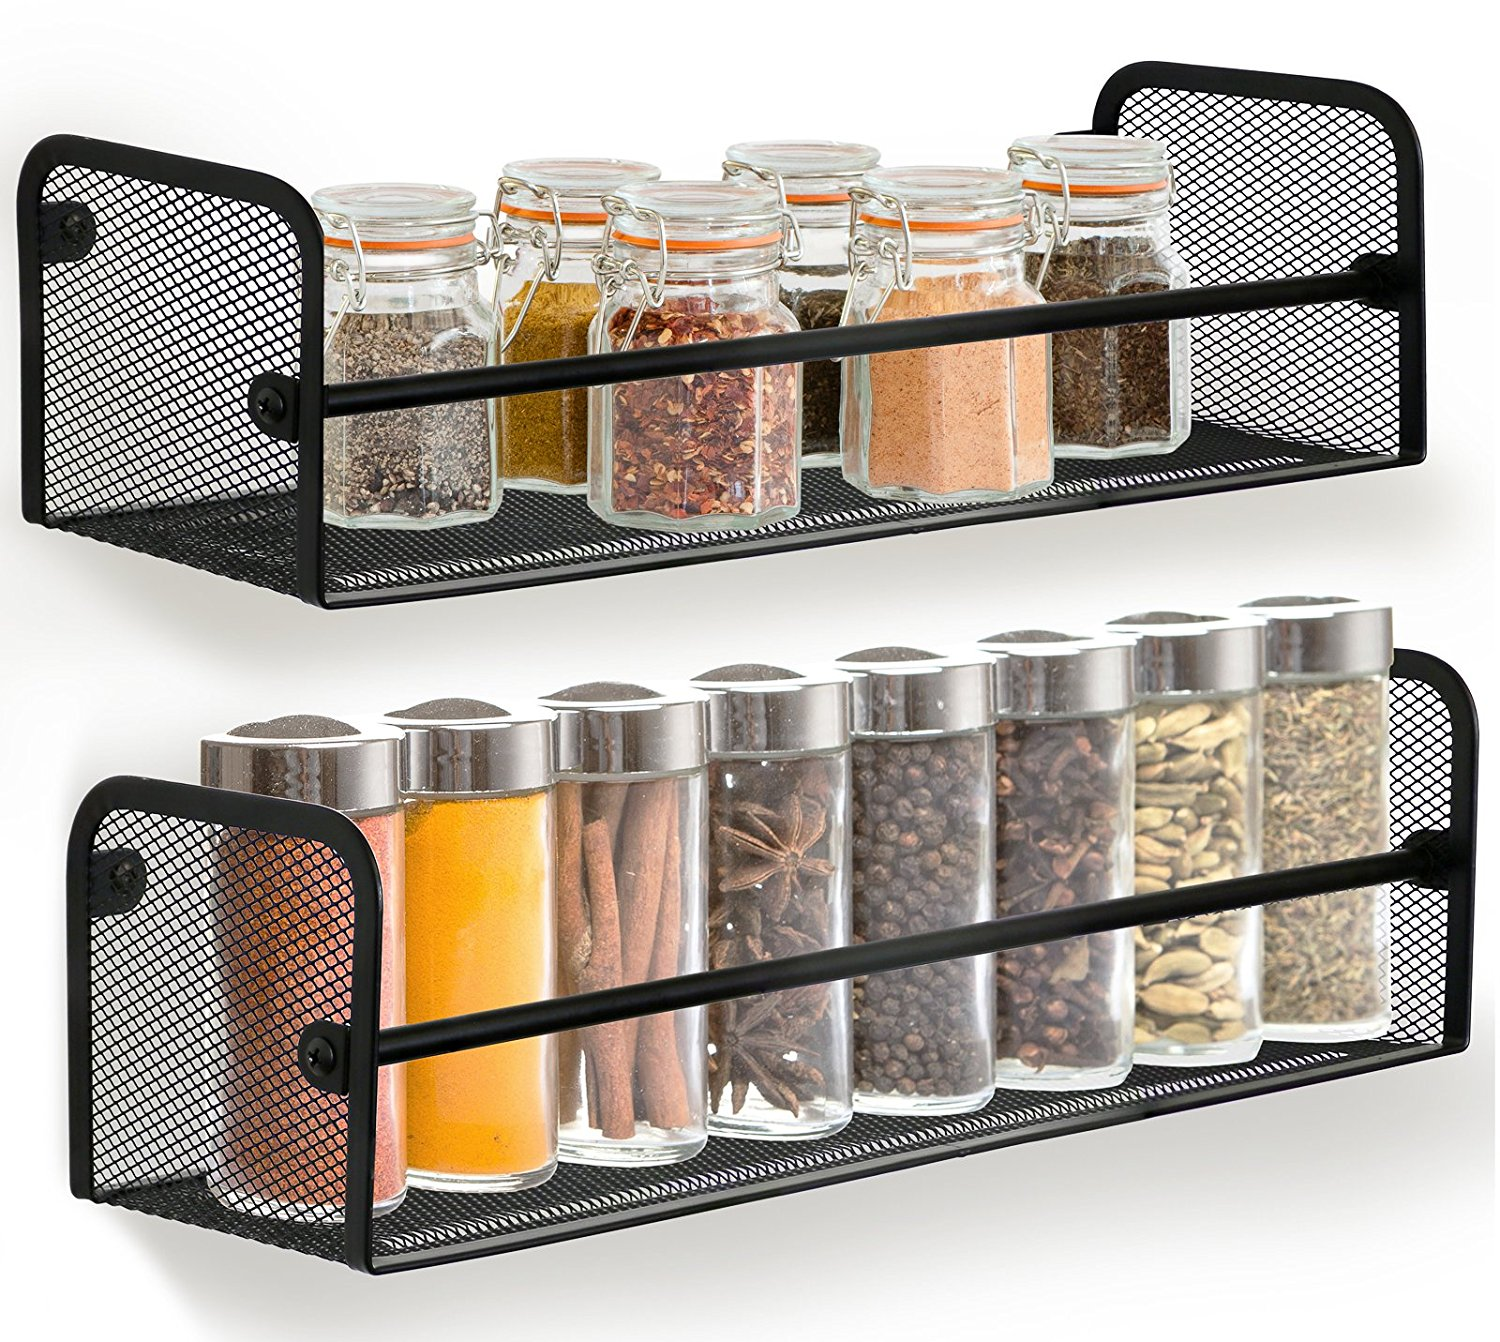 Brand New Wall Mount Single Tier Mesh Spice Rack, Black, Set 2, High-quality by